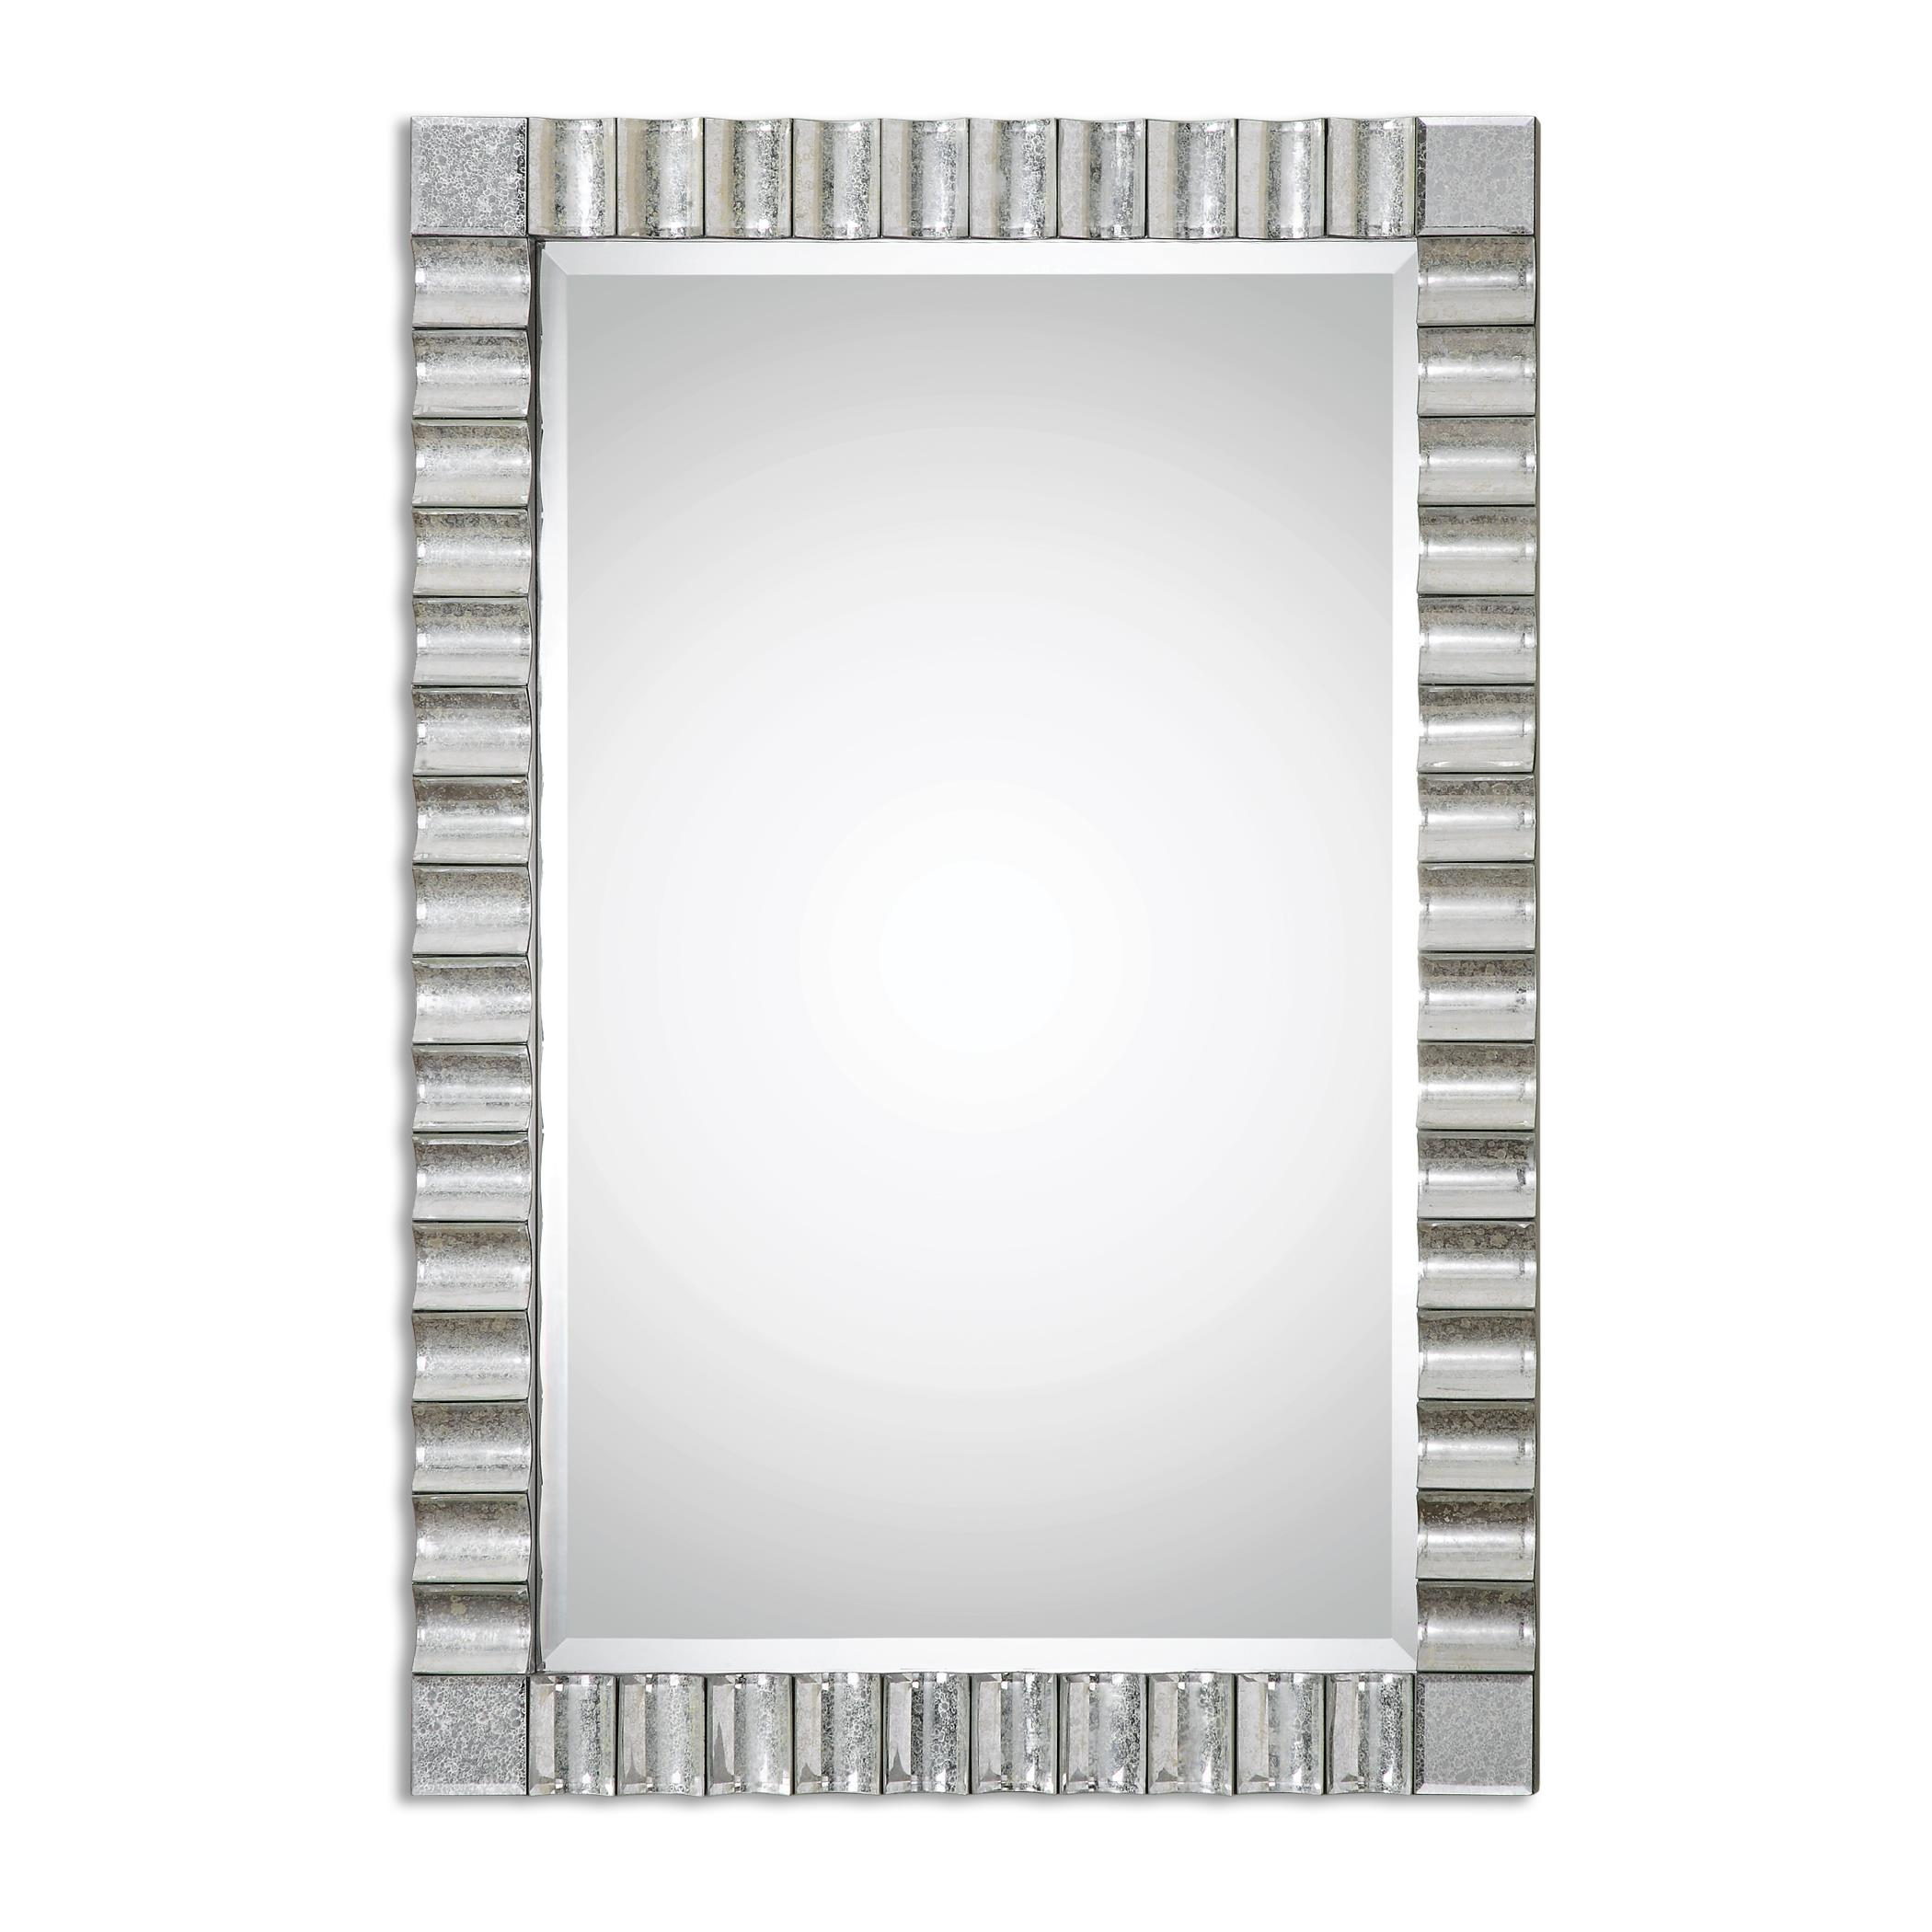 Uttermost Mirrors Amisos Scalloped Wall Mirror - Item Number: 08144